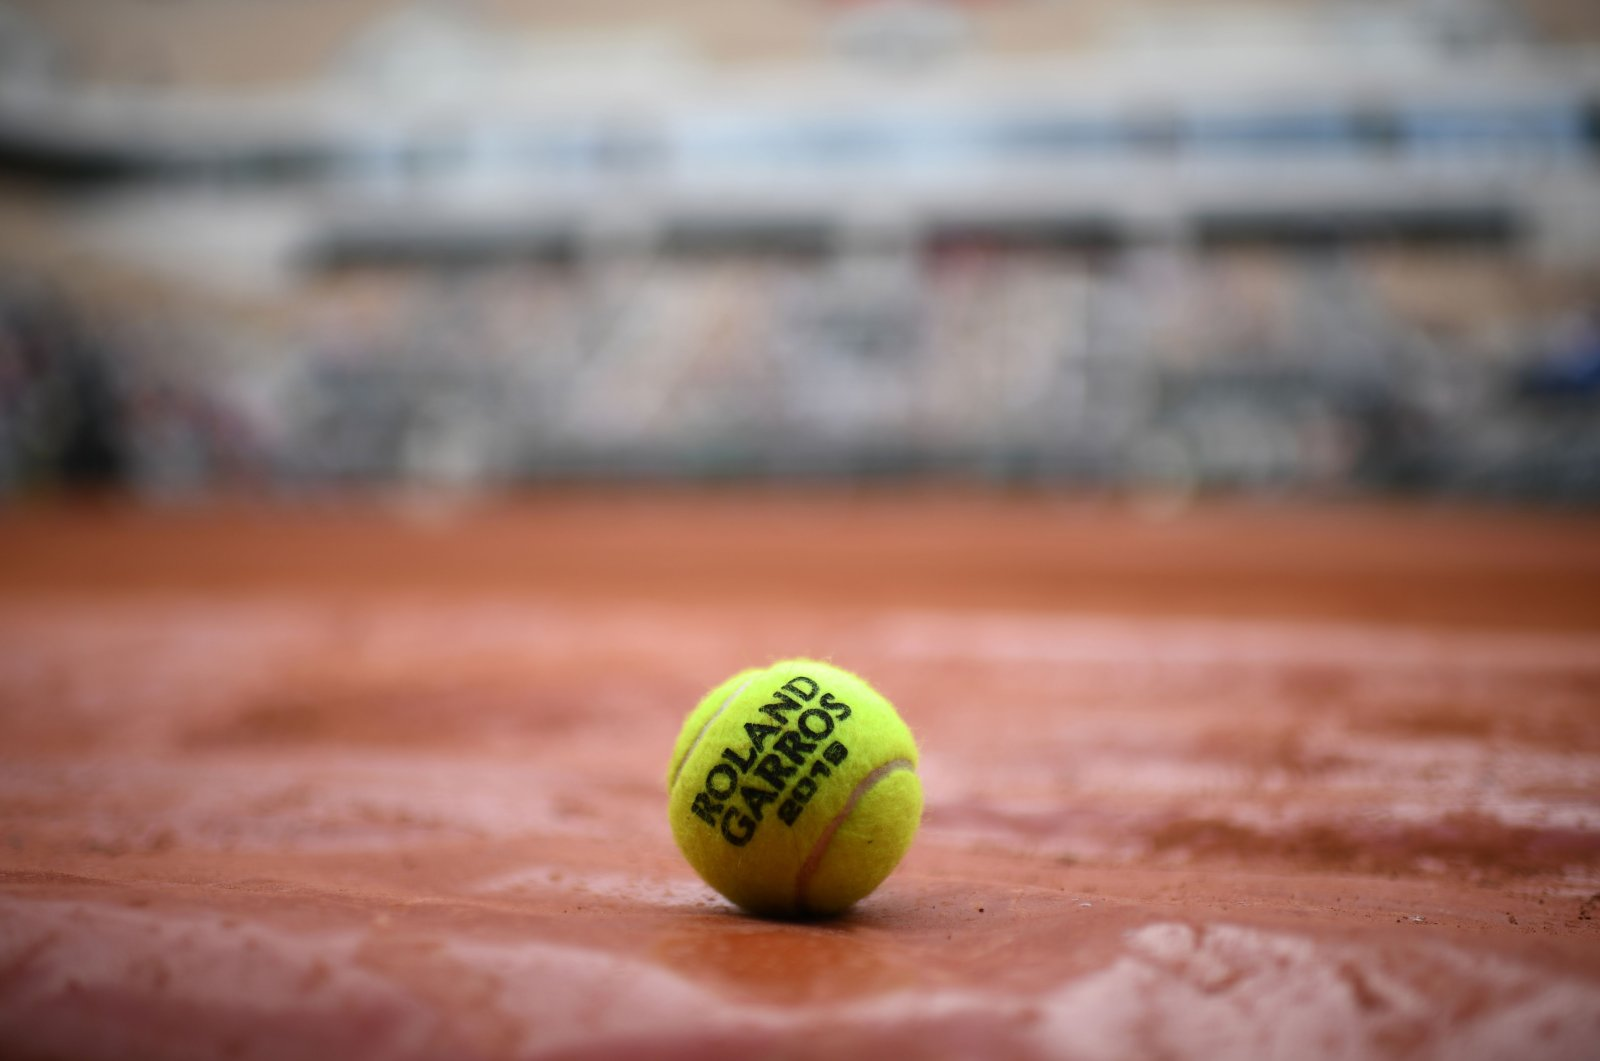 A 2019 French Open tennis tournament official ball is pictured on the Philippe Chatrier central court during the Roland Garros 2019 French Open tennis tournament in Paris, May 25, 2019. (AFP Photo)